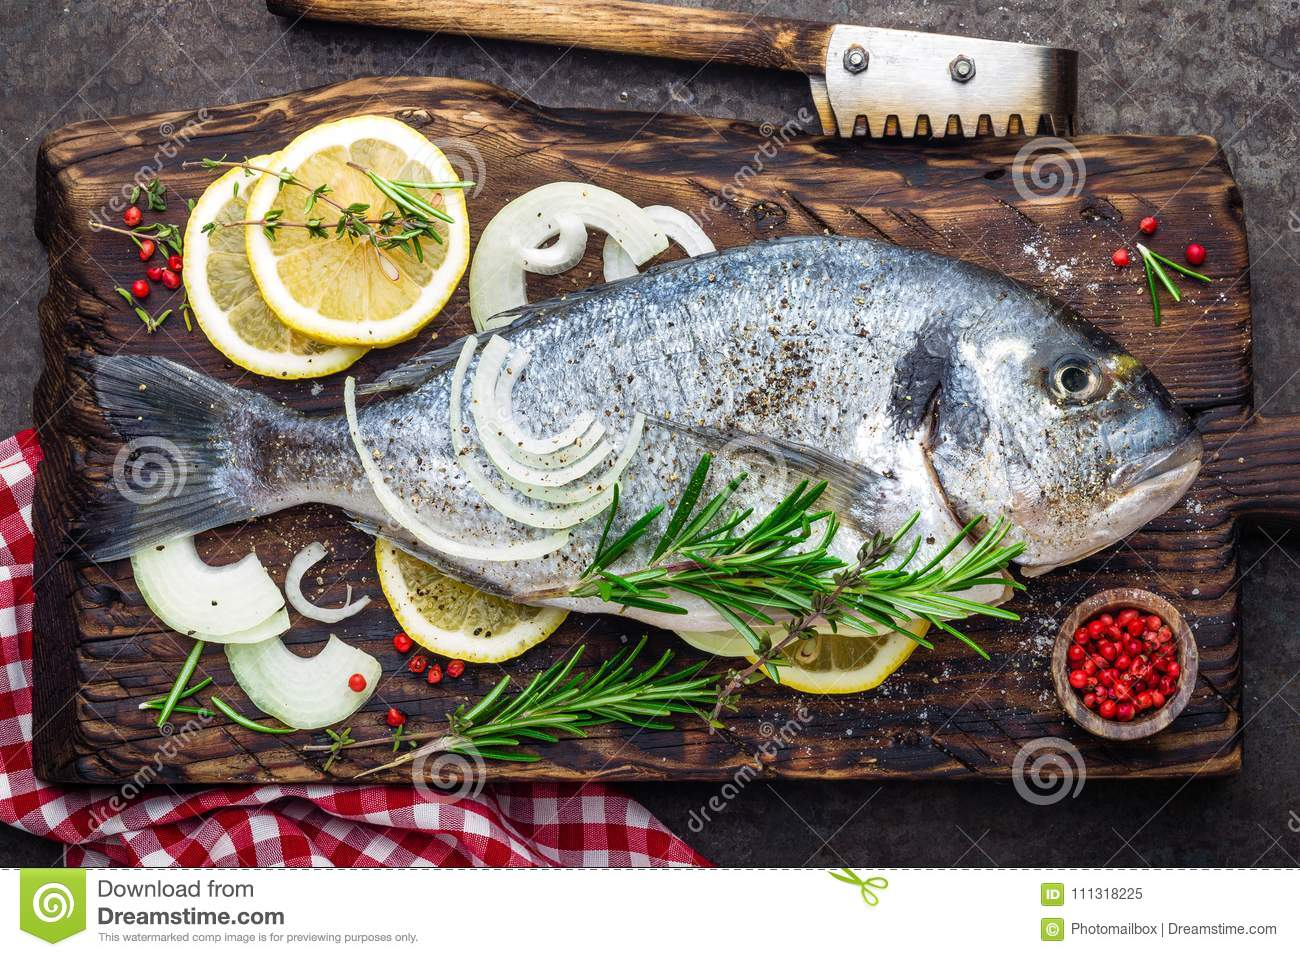 How dorado and sea bass are cooked Recipes and recommendations 14